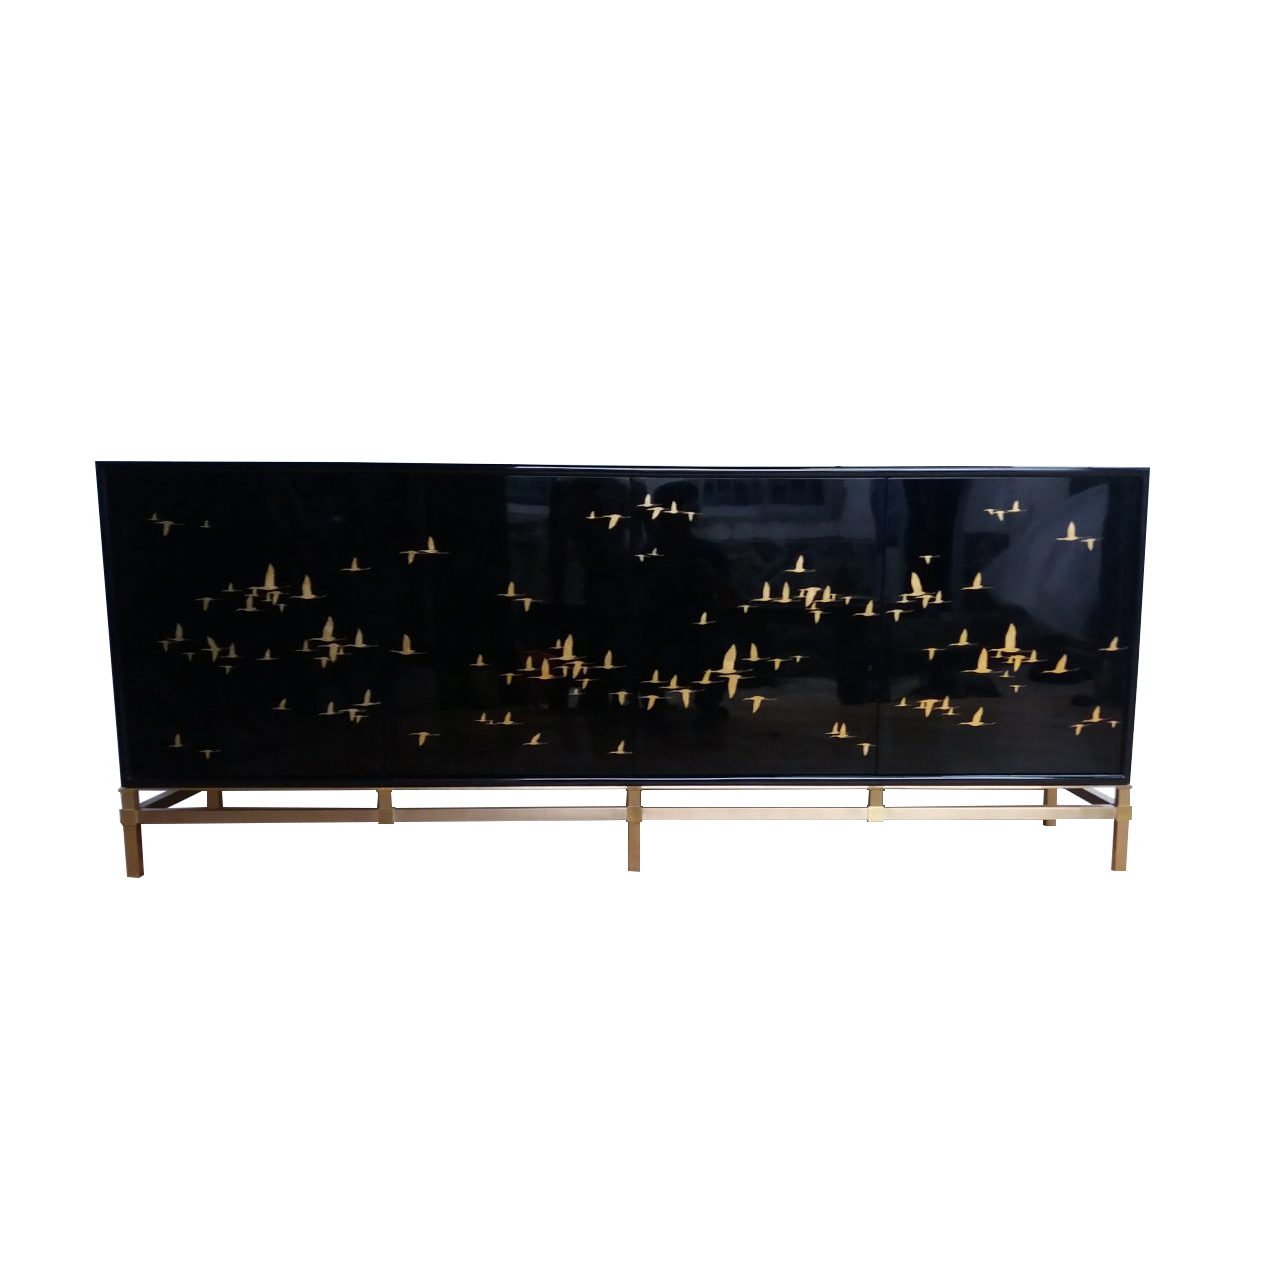 Cabinet with Brass Base Frame